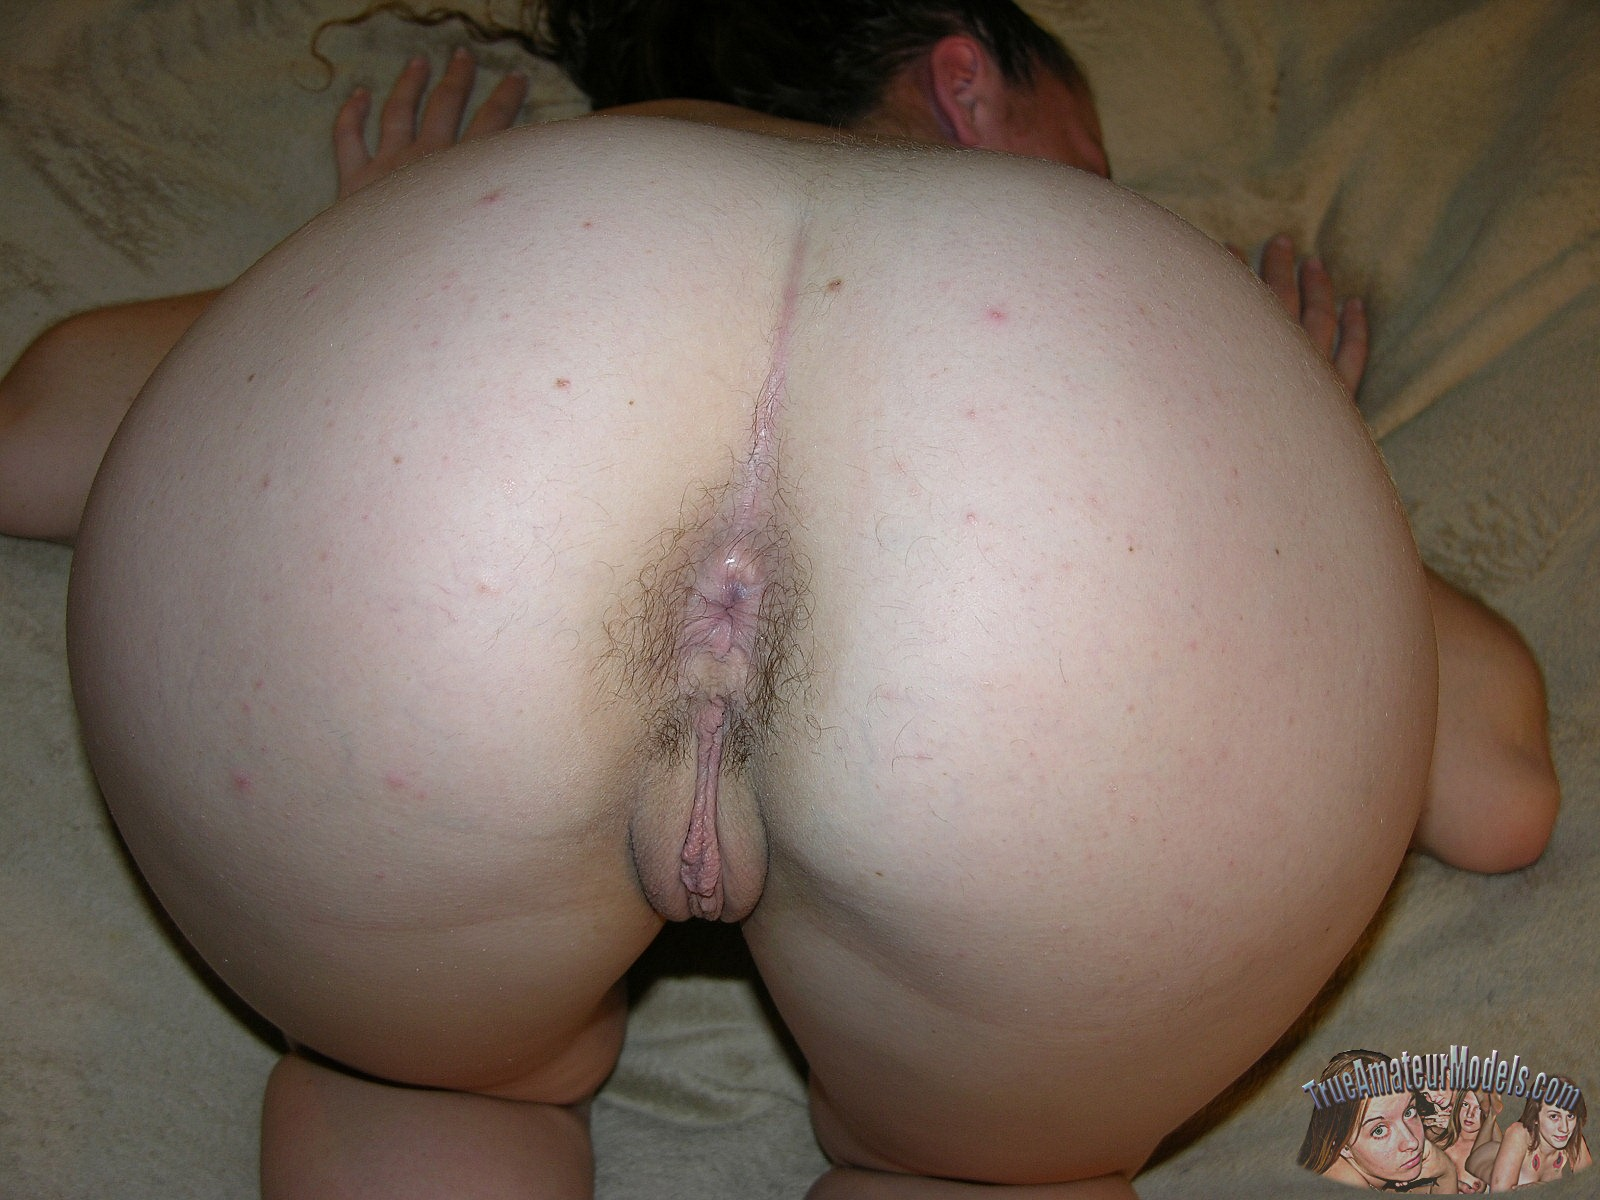 Hairy amateur butt women